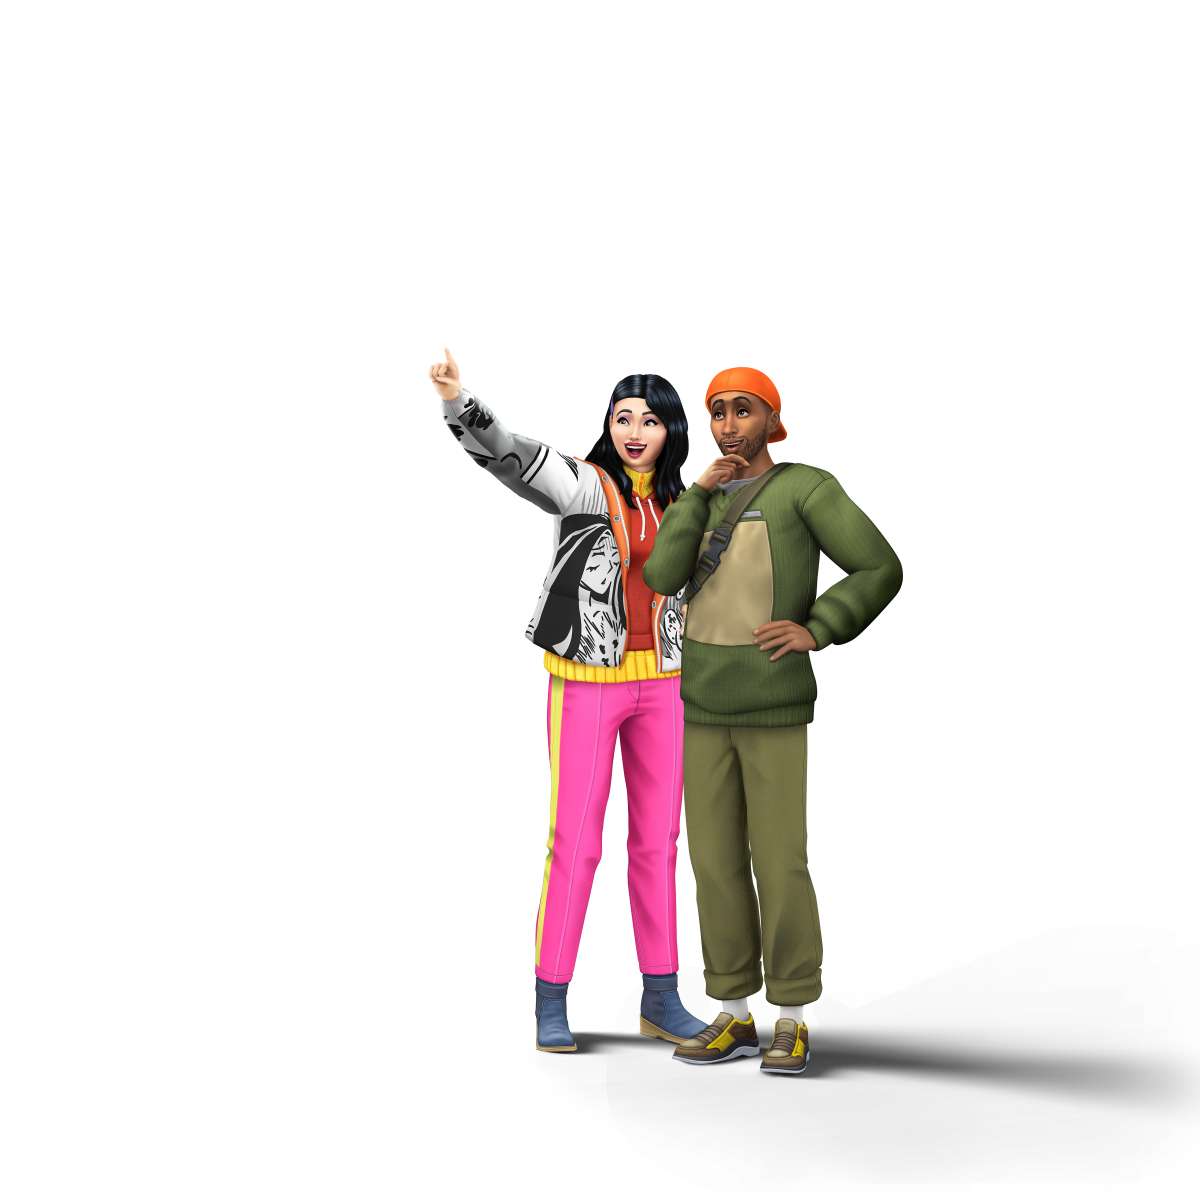 SIMS4_EP10_Snowy-Escape_Hikers_RGB.png